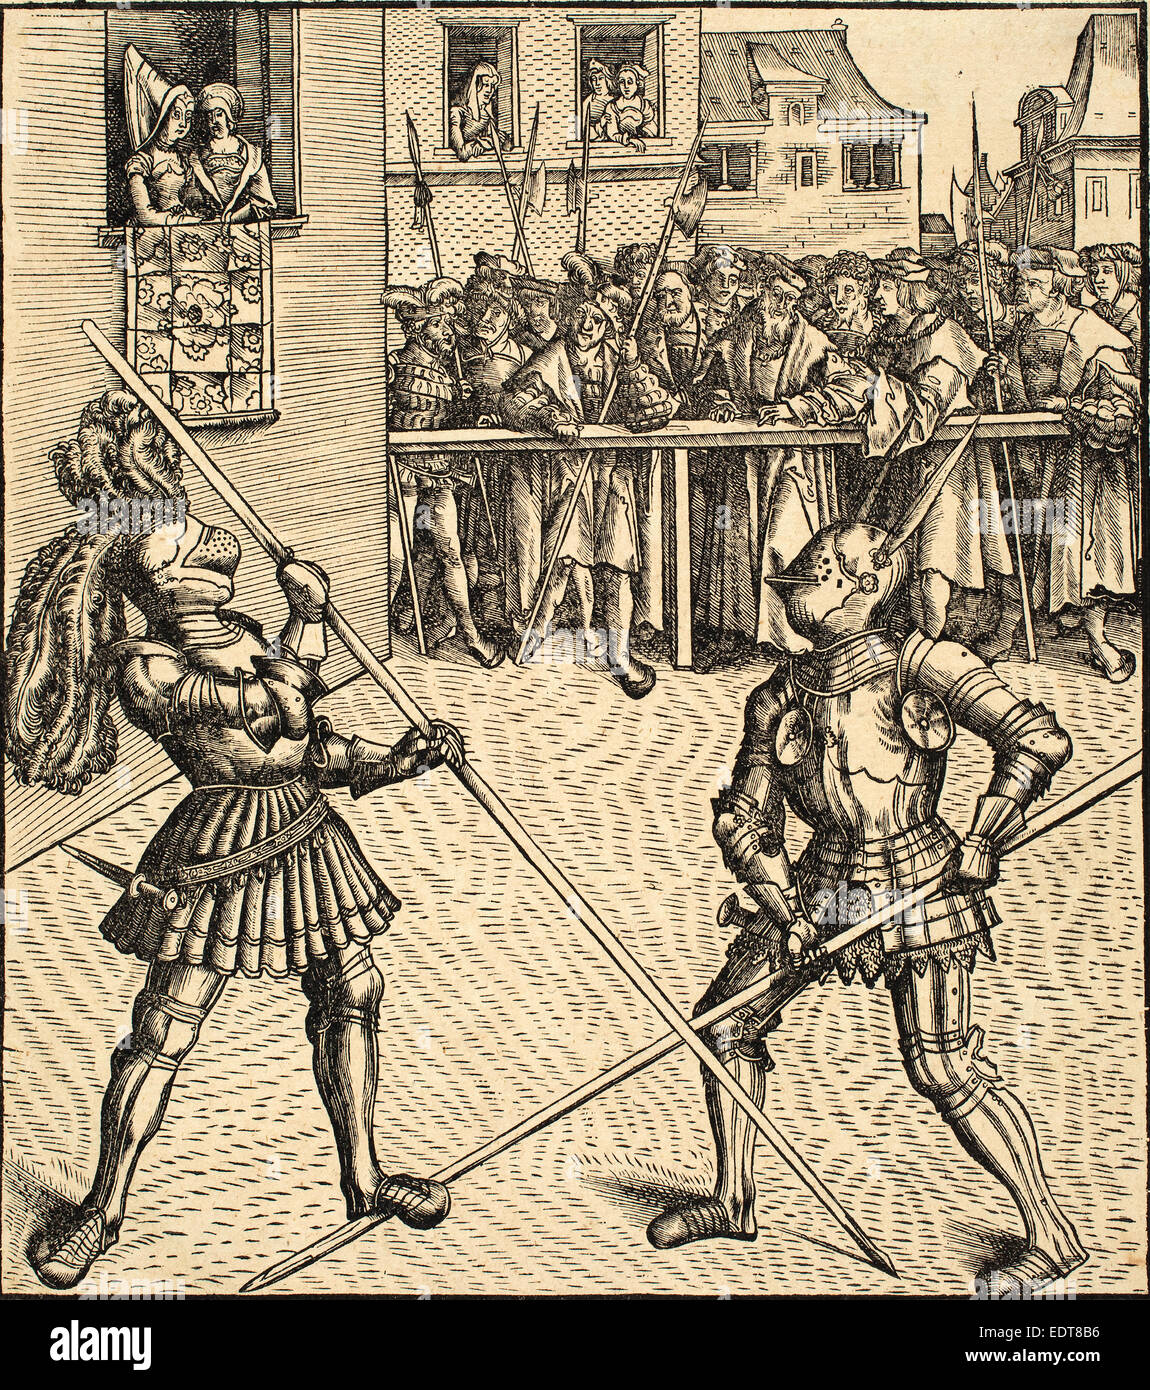 Leonhard Beck (German, c. 1480 - 1542), Tournament on the Occasion of the  Festivity of the Marriage, 1514-1516, woodcut